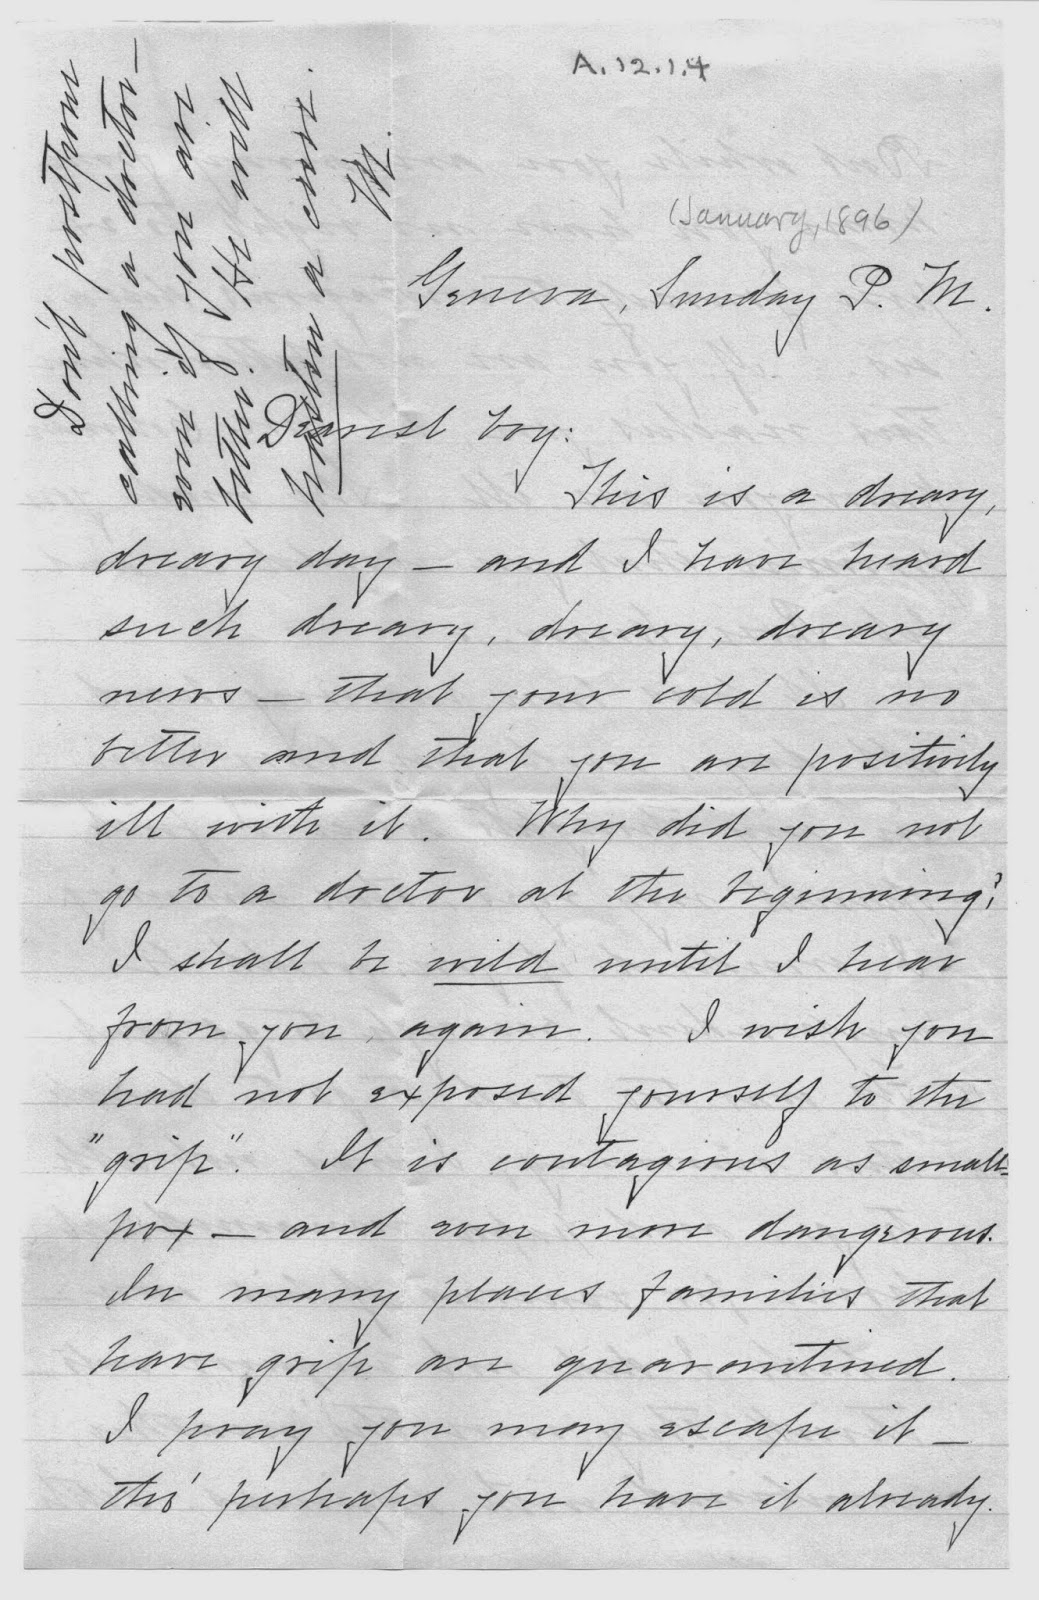 Geneva Historical Society: Reading Old Handwriting